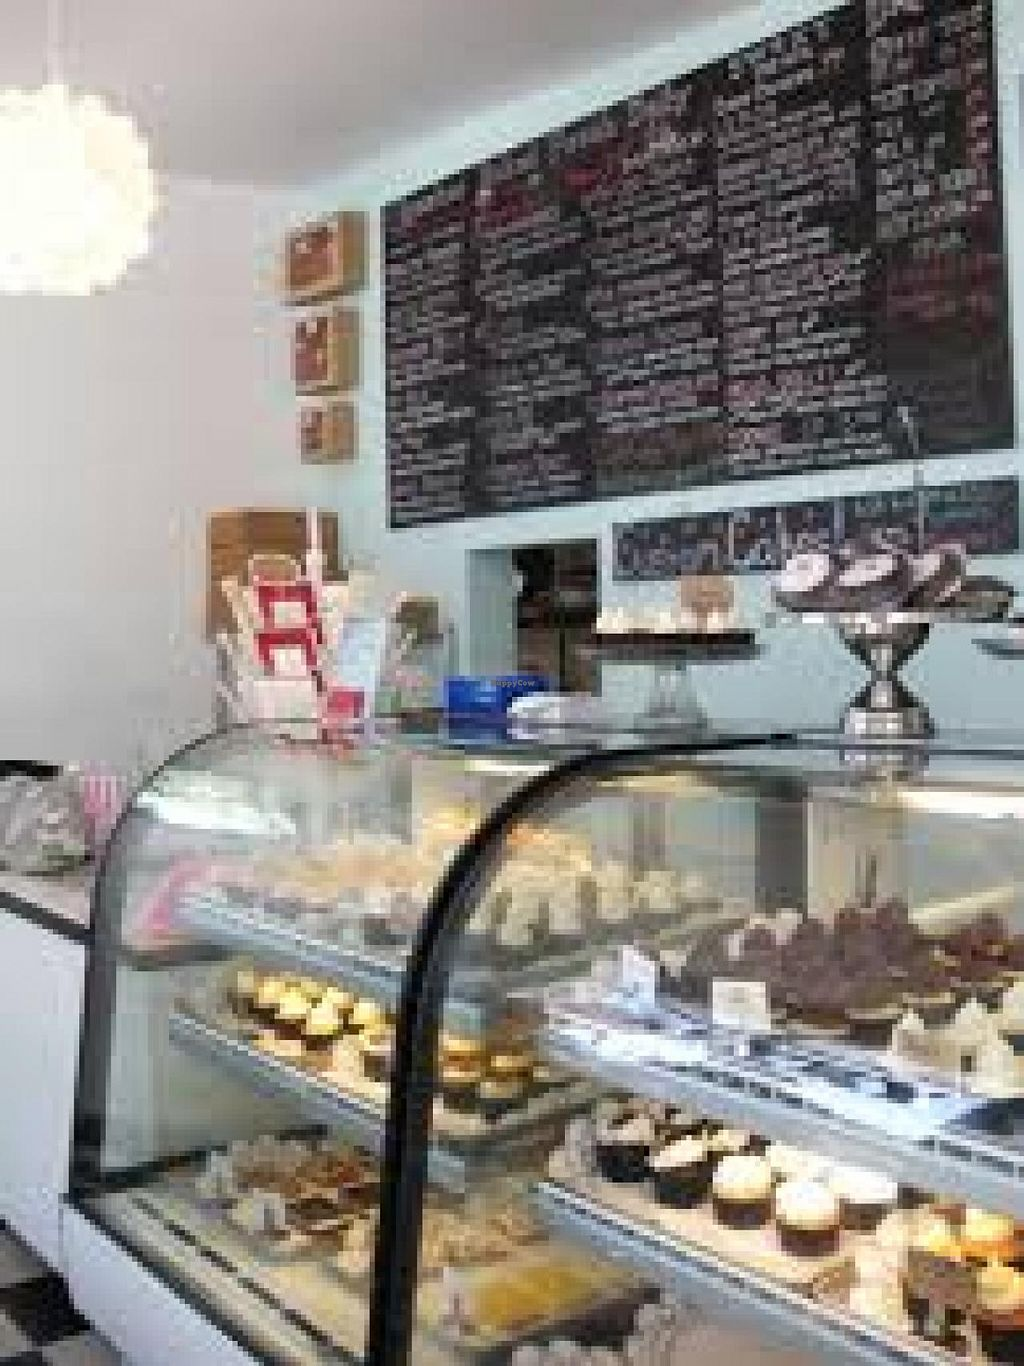 """Photo of Sugar Mama's Bakeshop  by <a href=""""/members/profile/AustinJardinera"""">AustinJardinera</a> <br/>Cabinet and Menu changes daily <br/> March 6, 2015  - <a href='/contact/abuse/image/56277/95071'>Report</a>"""